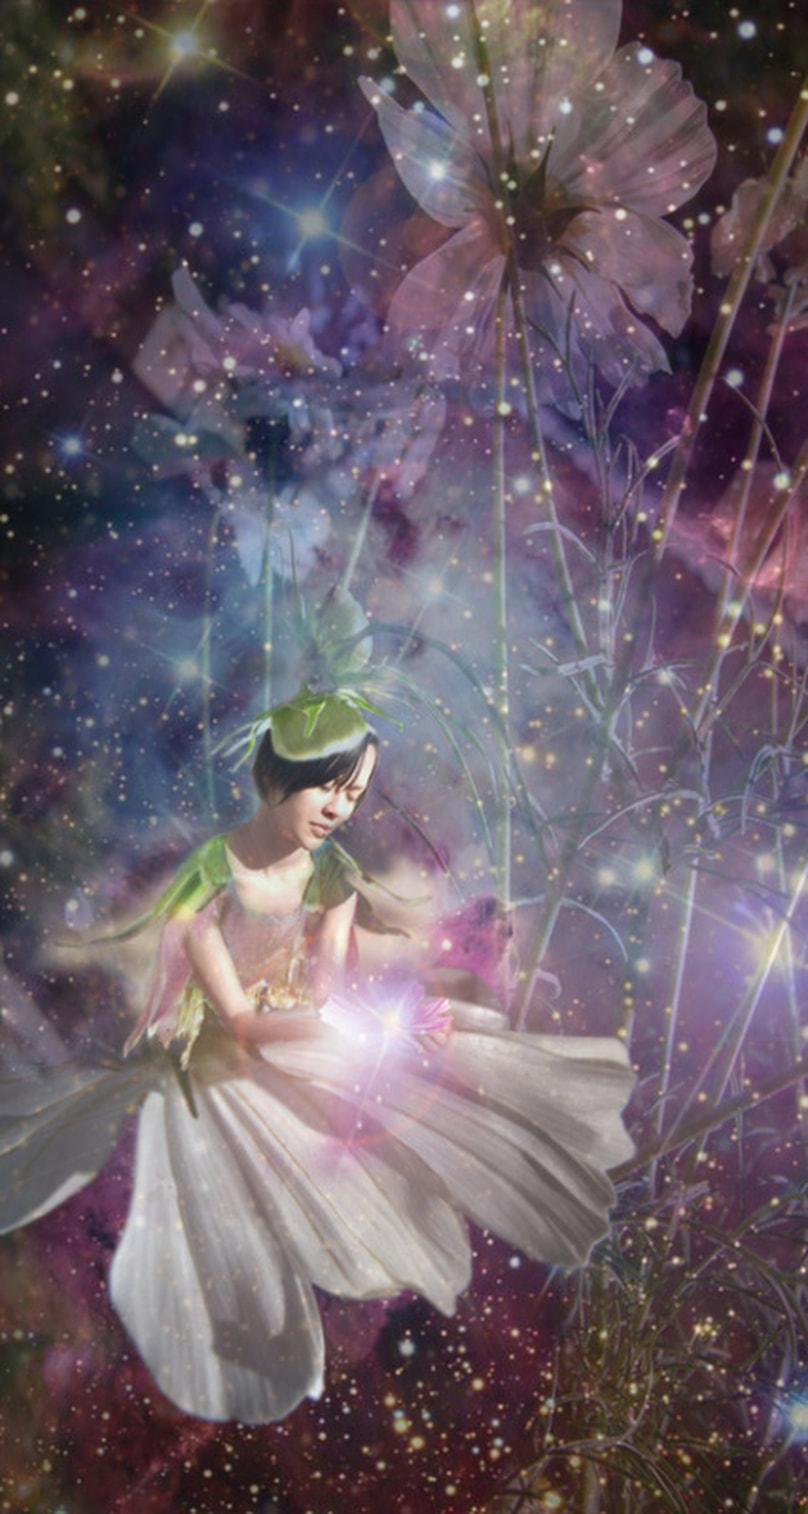 fairy with dress of cosmos flowers overlaid with galaxies